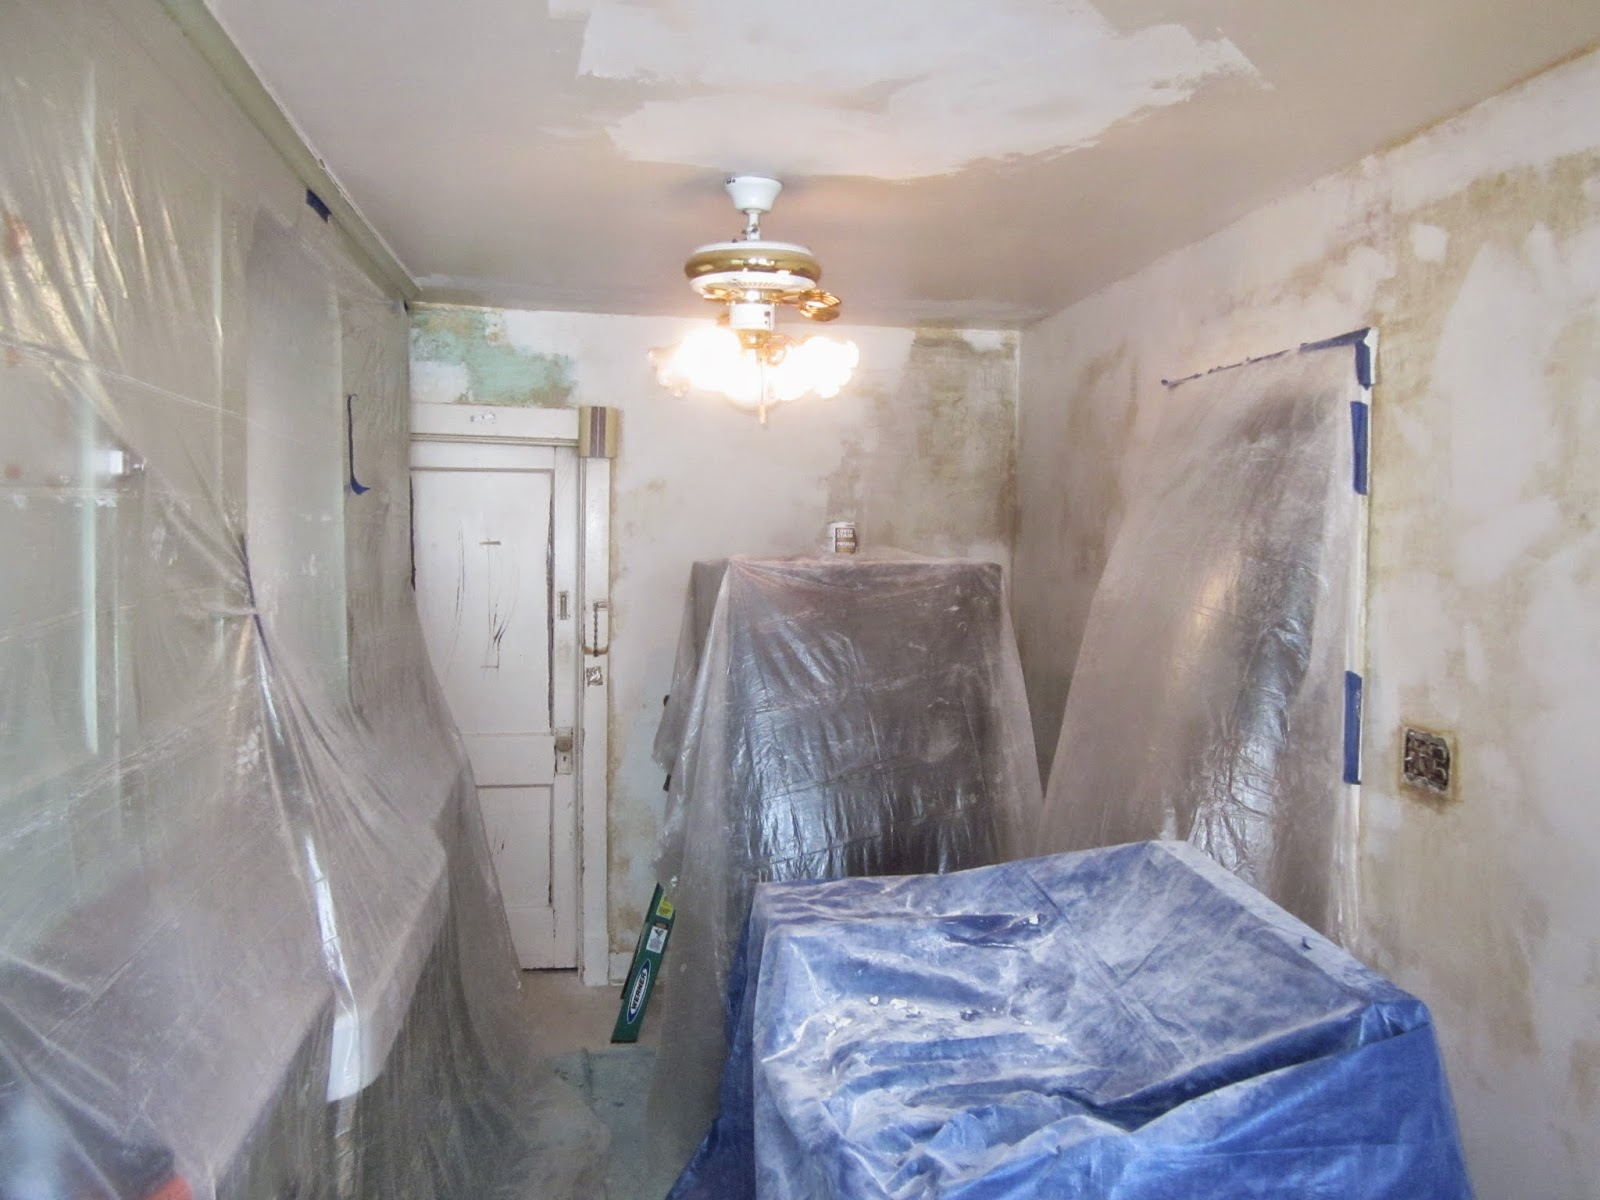 During kitchen remodeling